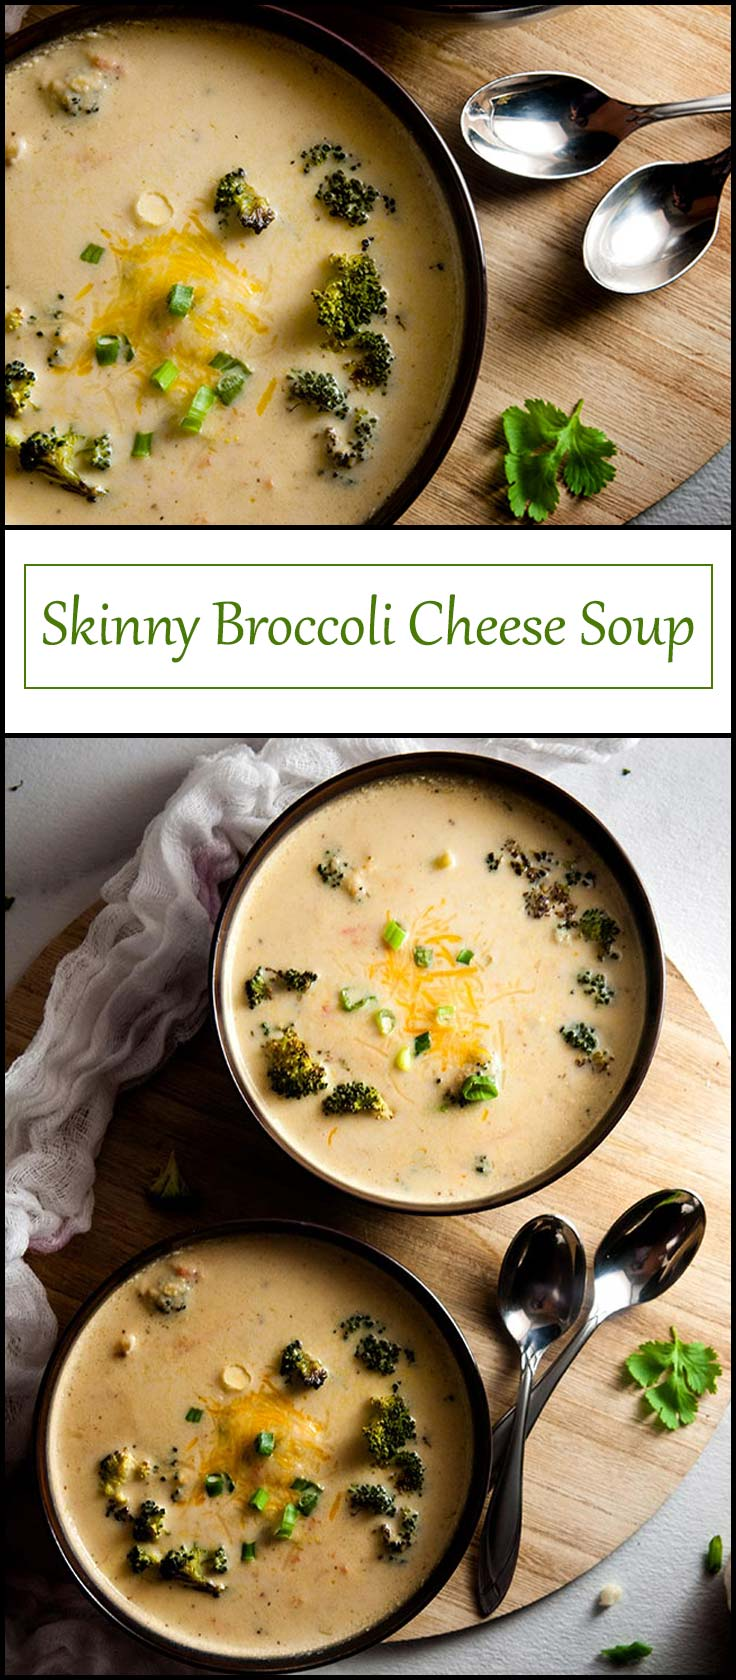 Skinny Broccoli Cheese Soup with Hidden Veggies from www.seasonedsprinkles.com